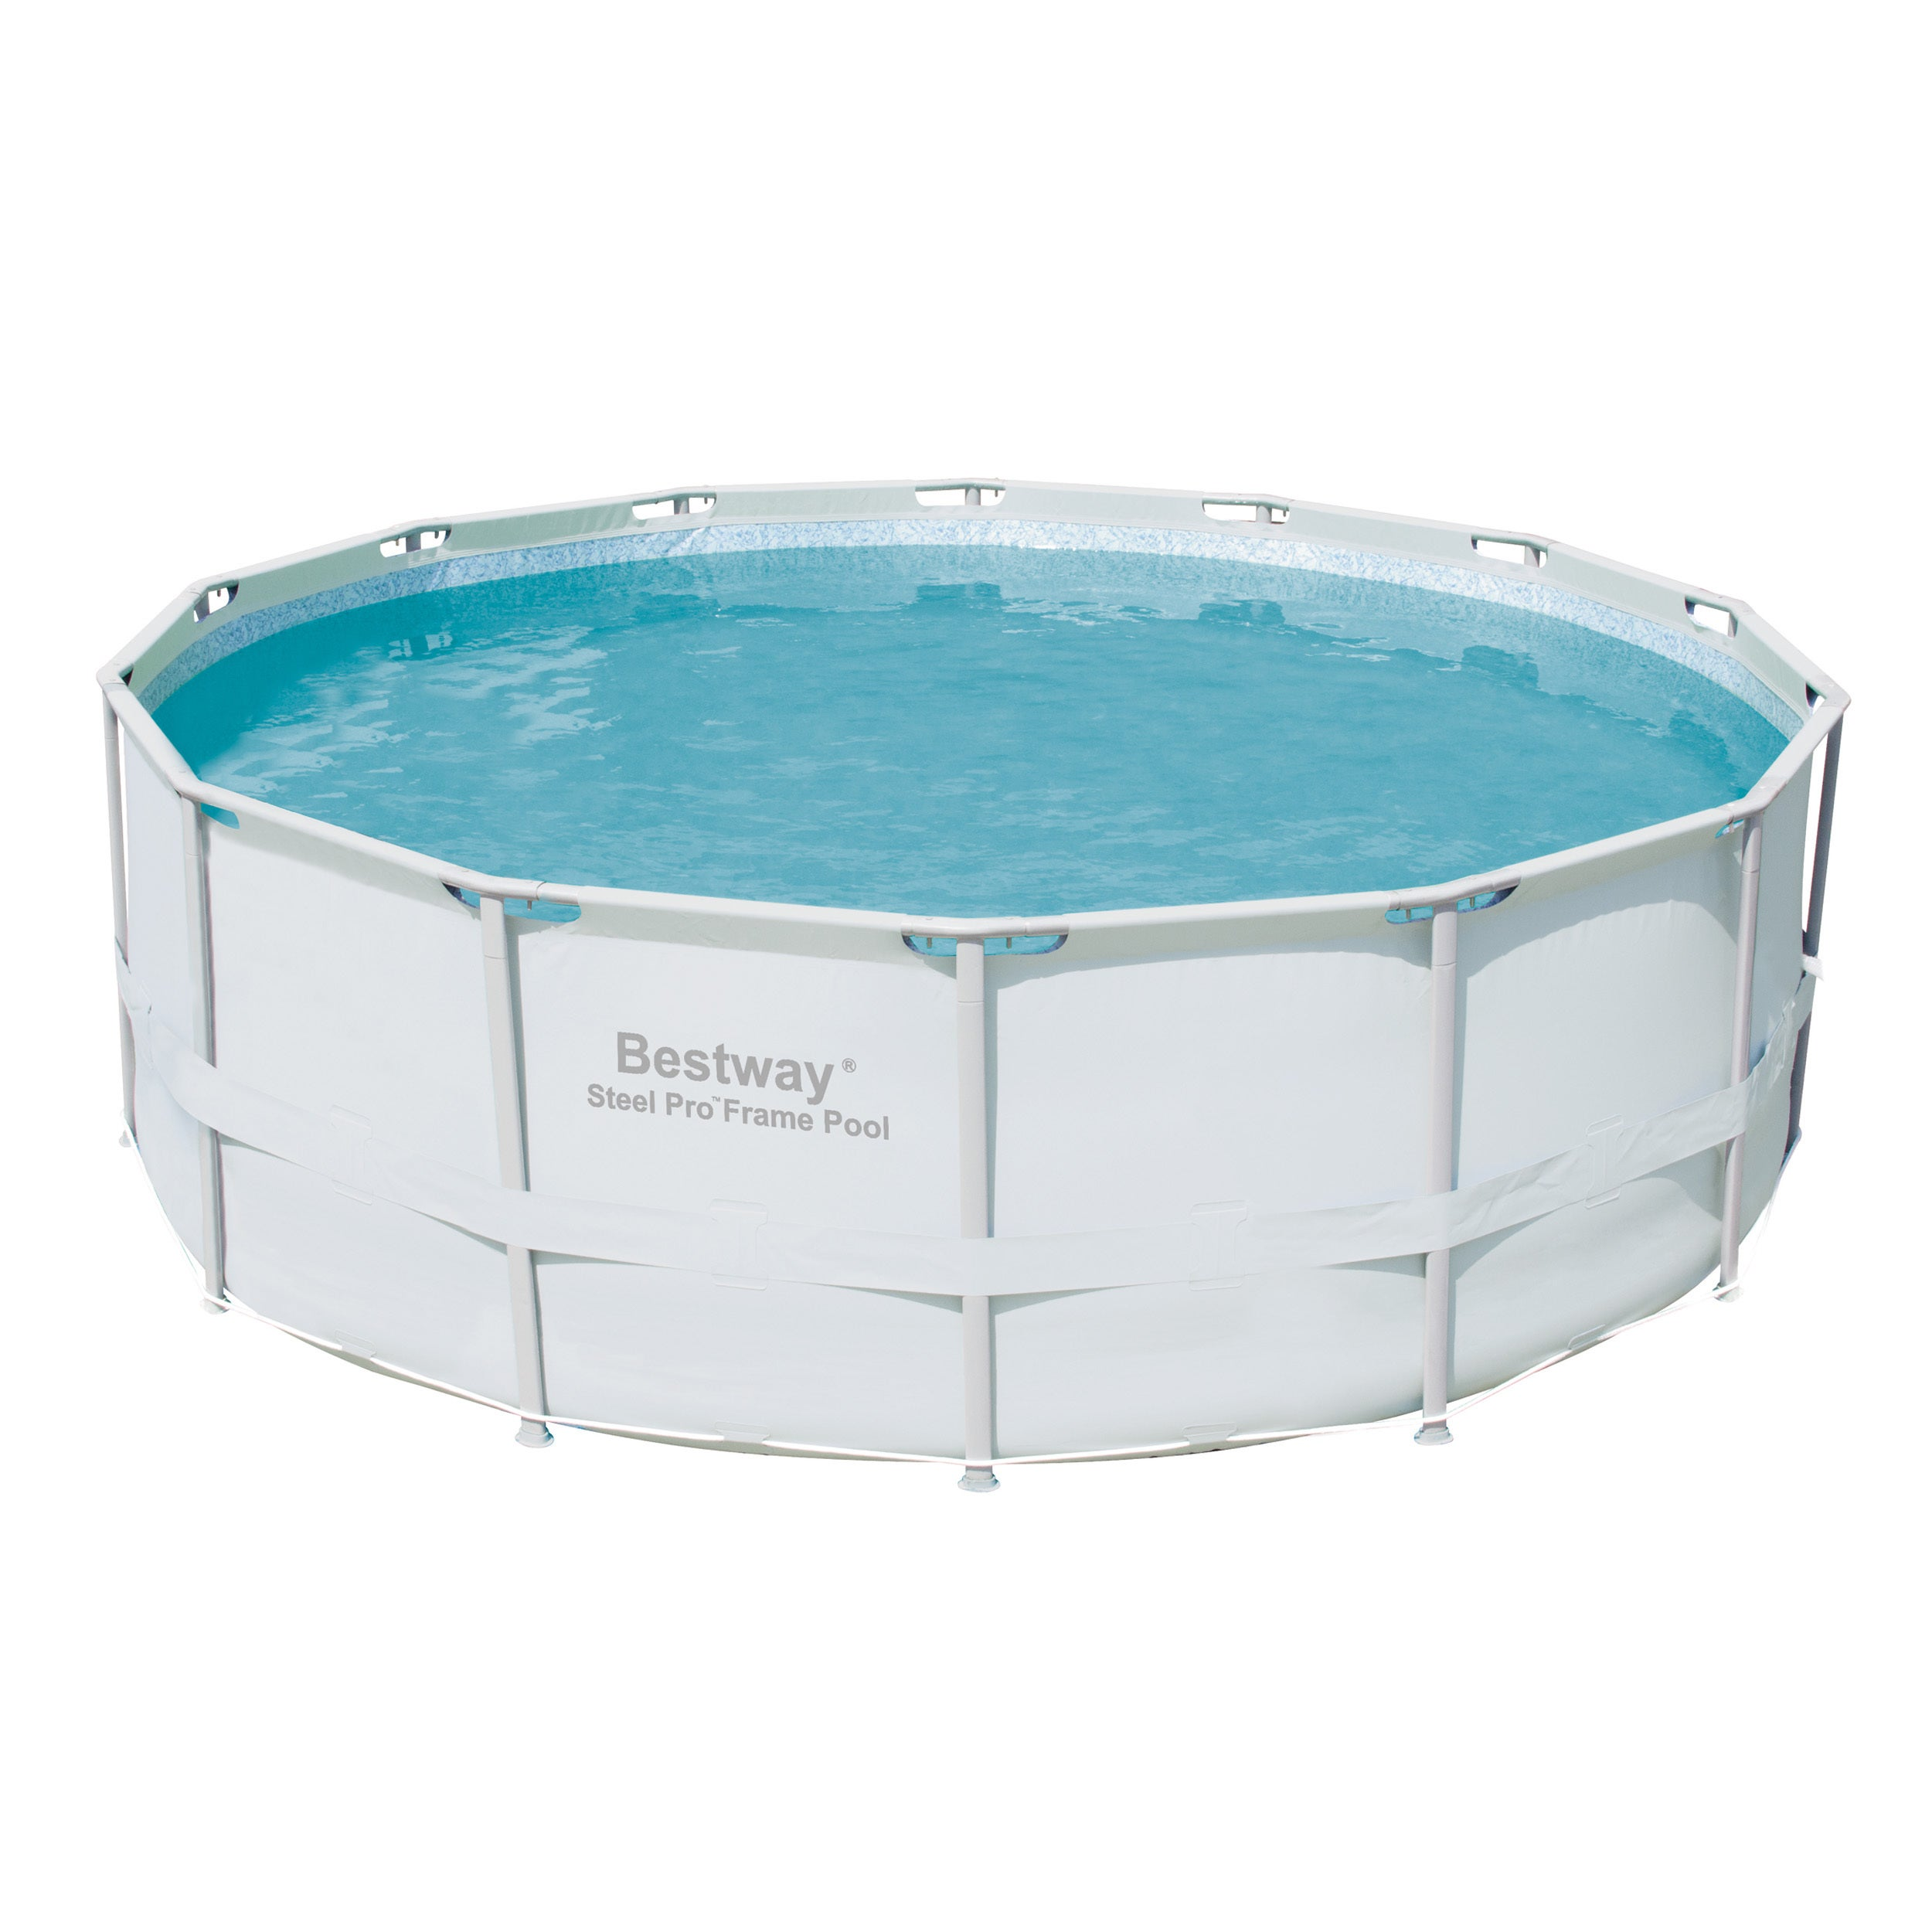 Bestway Steel Frame Pool - Free Shipping Today - Overstock - 16120025